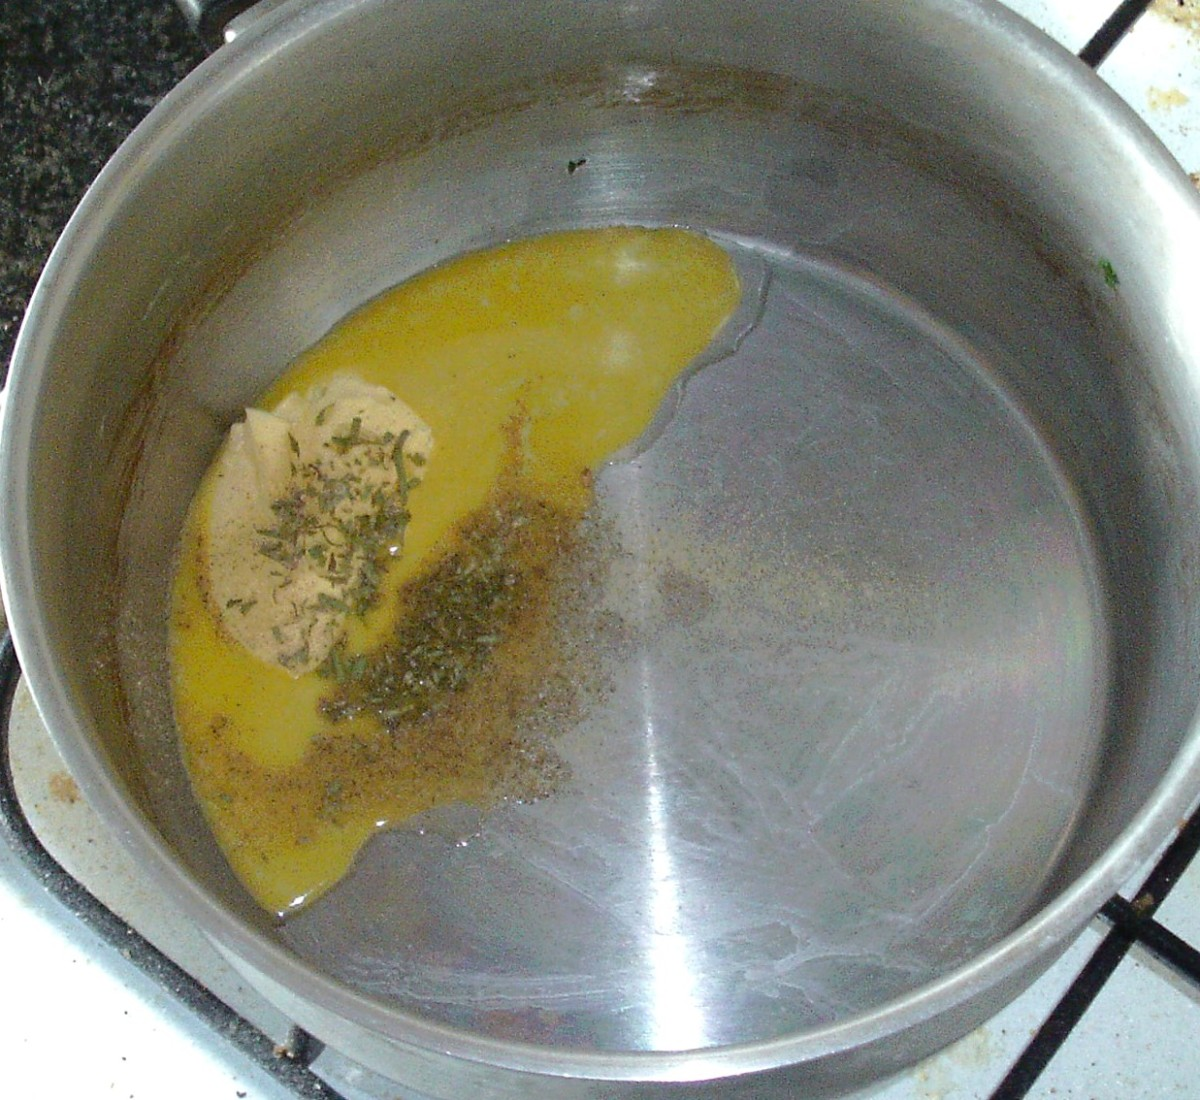 Butter is melted with turmeric, tarragon and seasonings